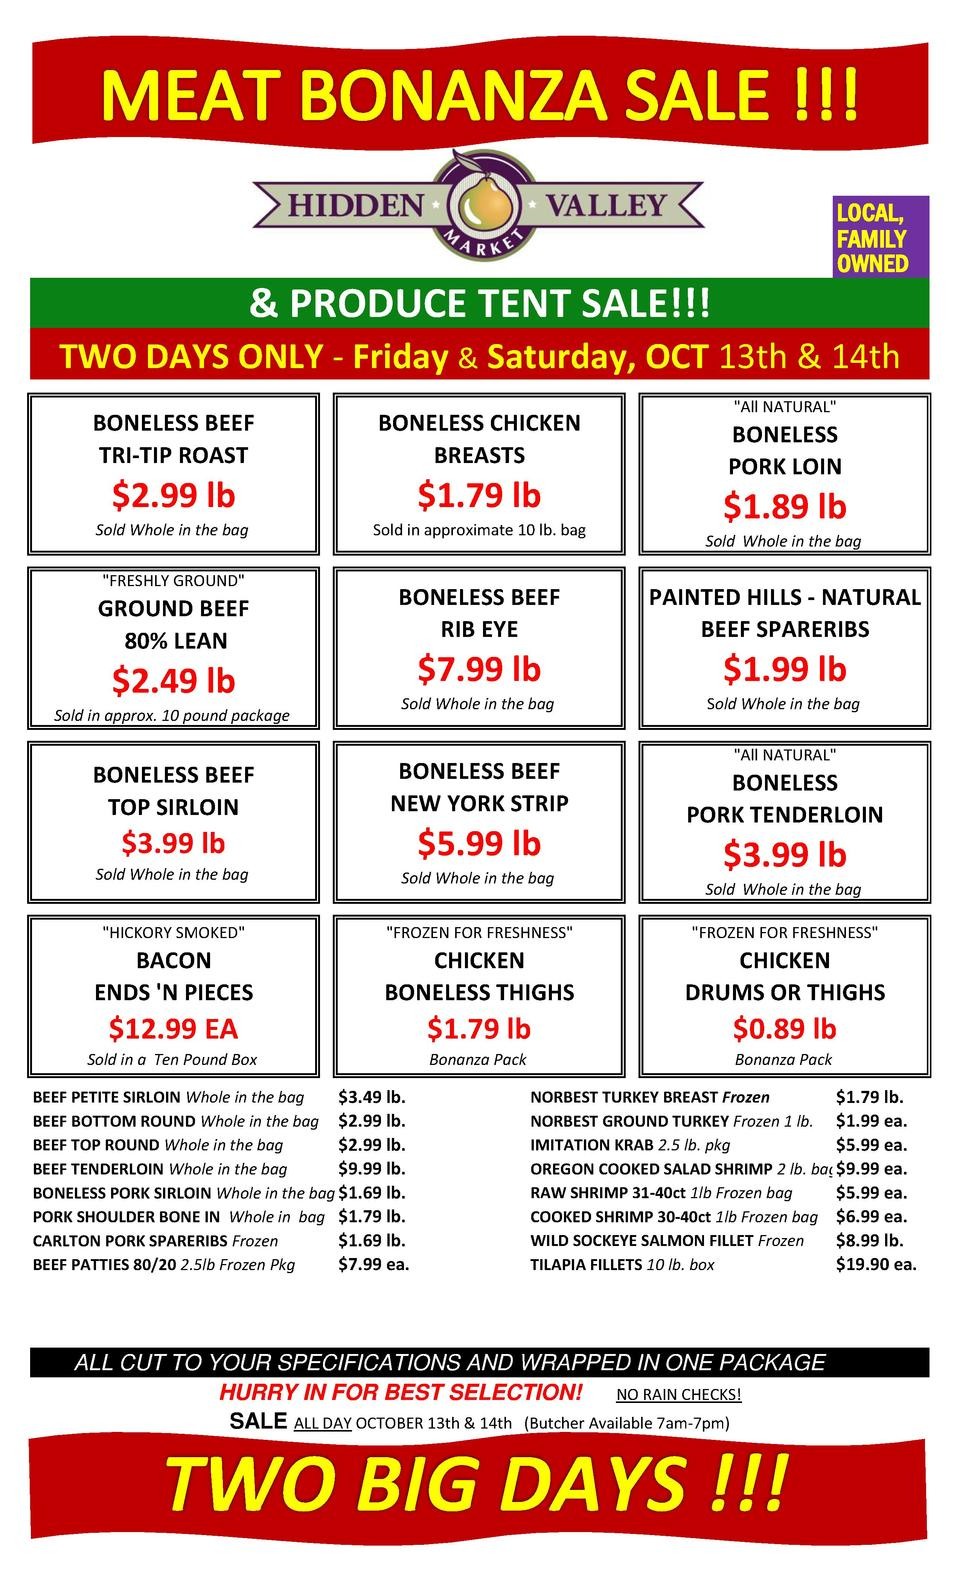 LOCAL, FAMILY OWNED    PRODUCE TENT SALE    TWO DAYS ONLY - Friday   Saturday, OCT 13th   14th BONELESS BEEF TRI-TIP ROAST...